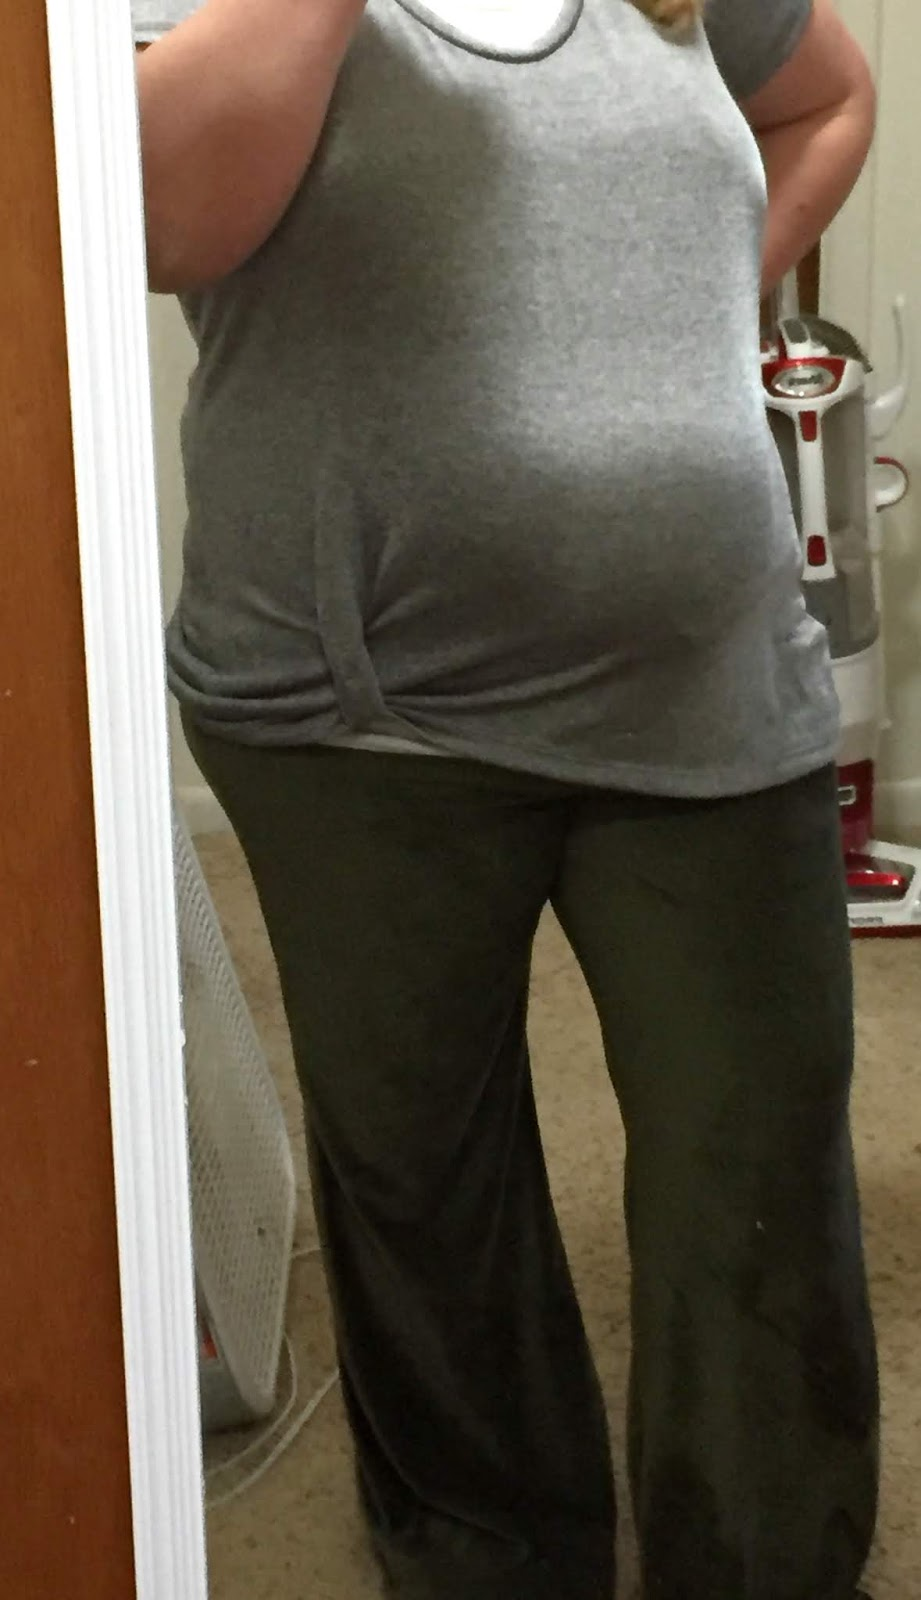 9c10b2f7d8 Pants selfie: Shakti Pants (bell option) by Designer Stitch; fabric is  stretch corduroy from So Sew English. Silver top: Mama Kourtney knot top by  Made for ...